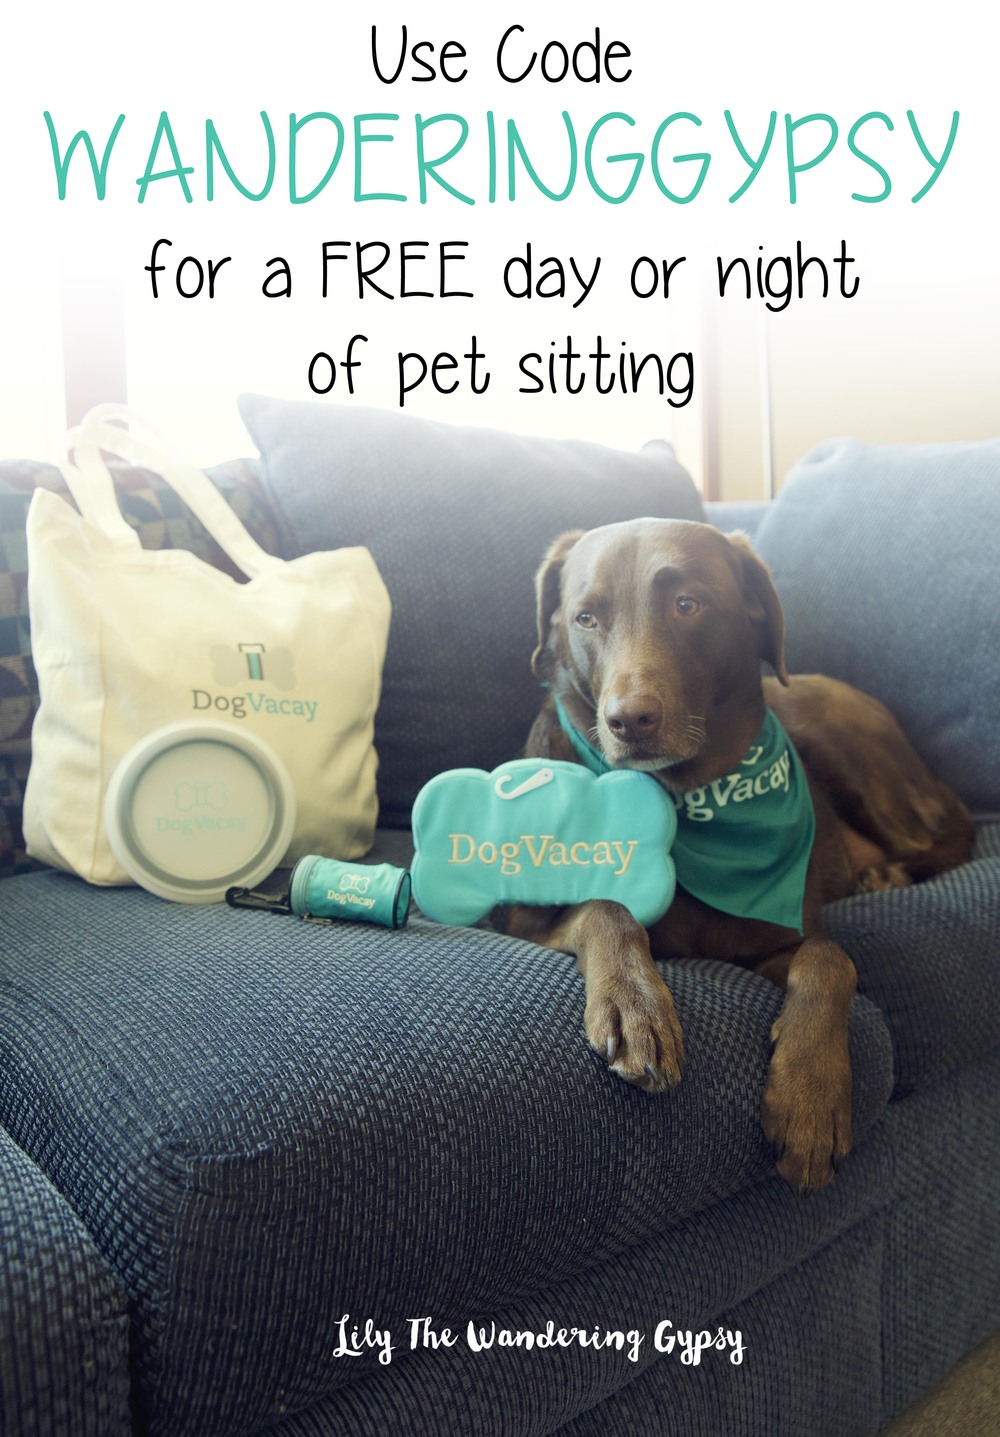 Cabbie + DogVacay   - Get a FREE day or night of Pet Sitting! Click the image to learn more!